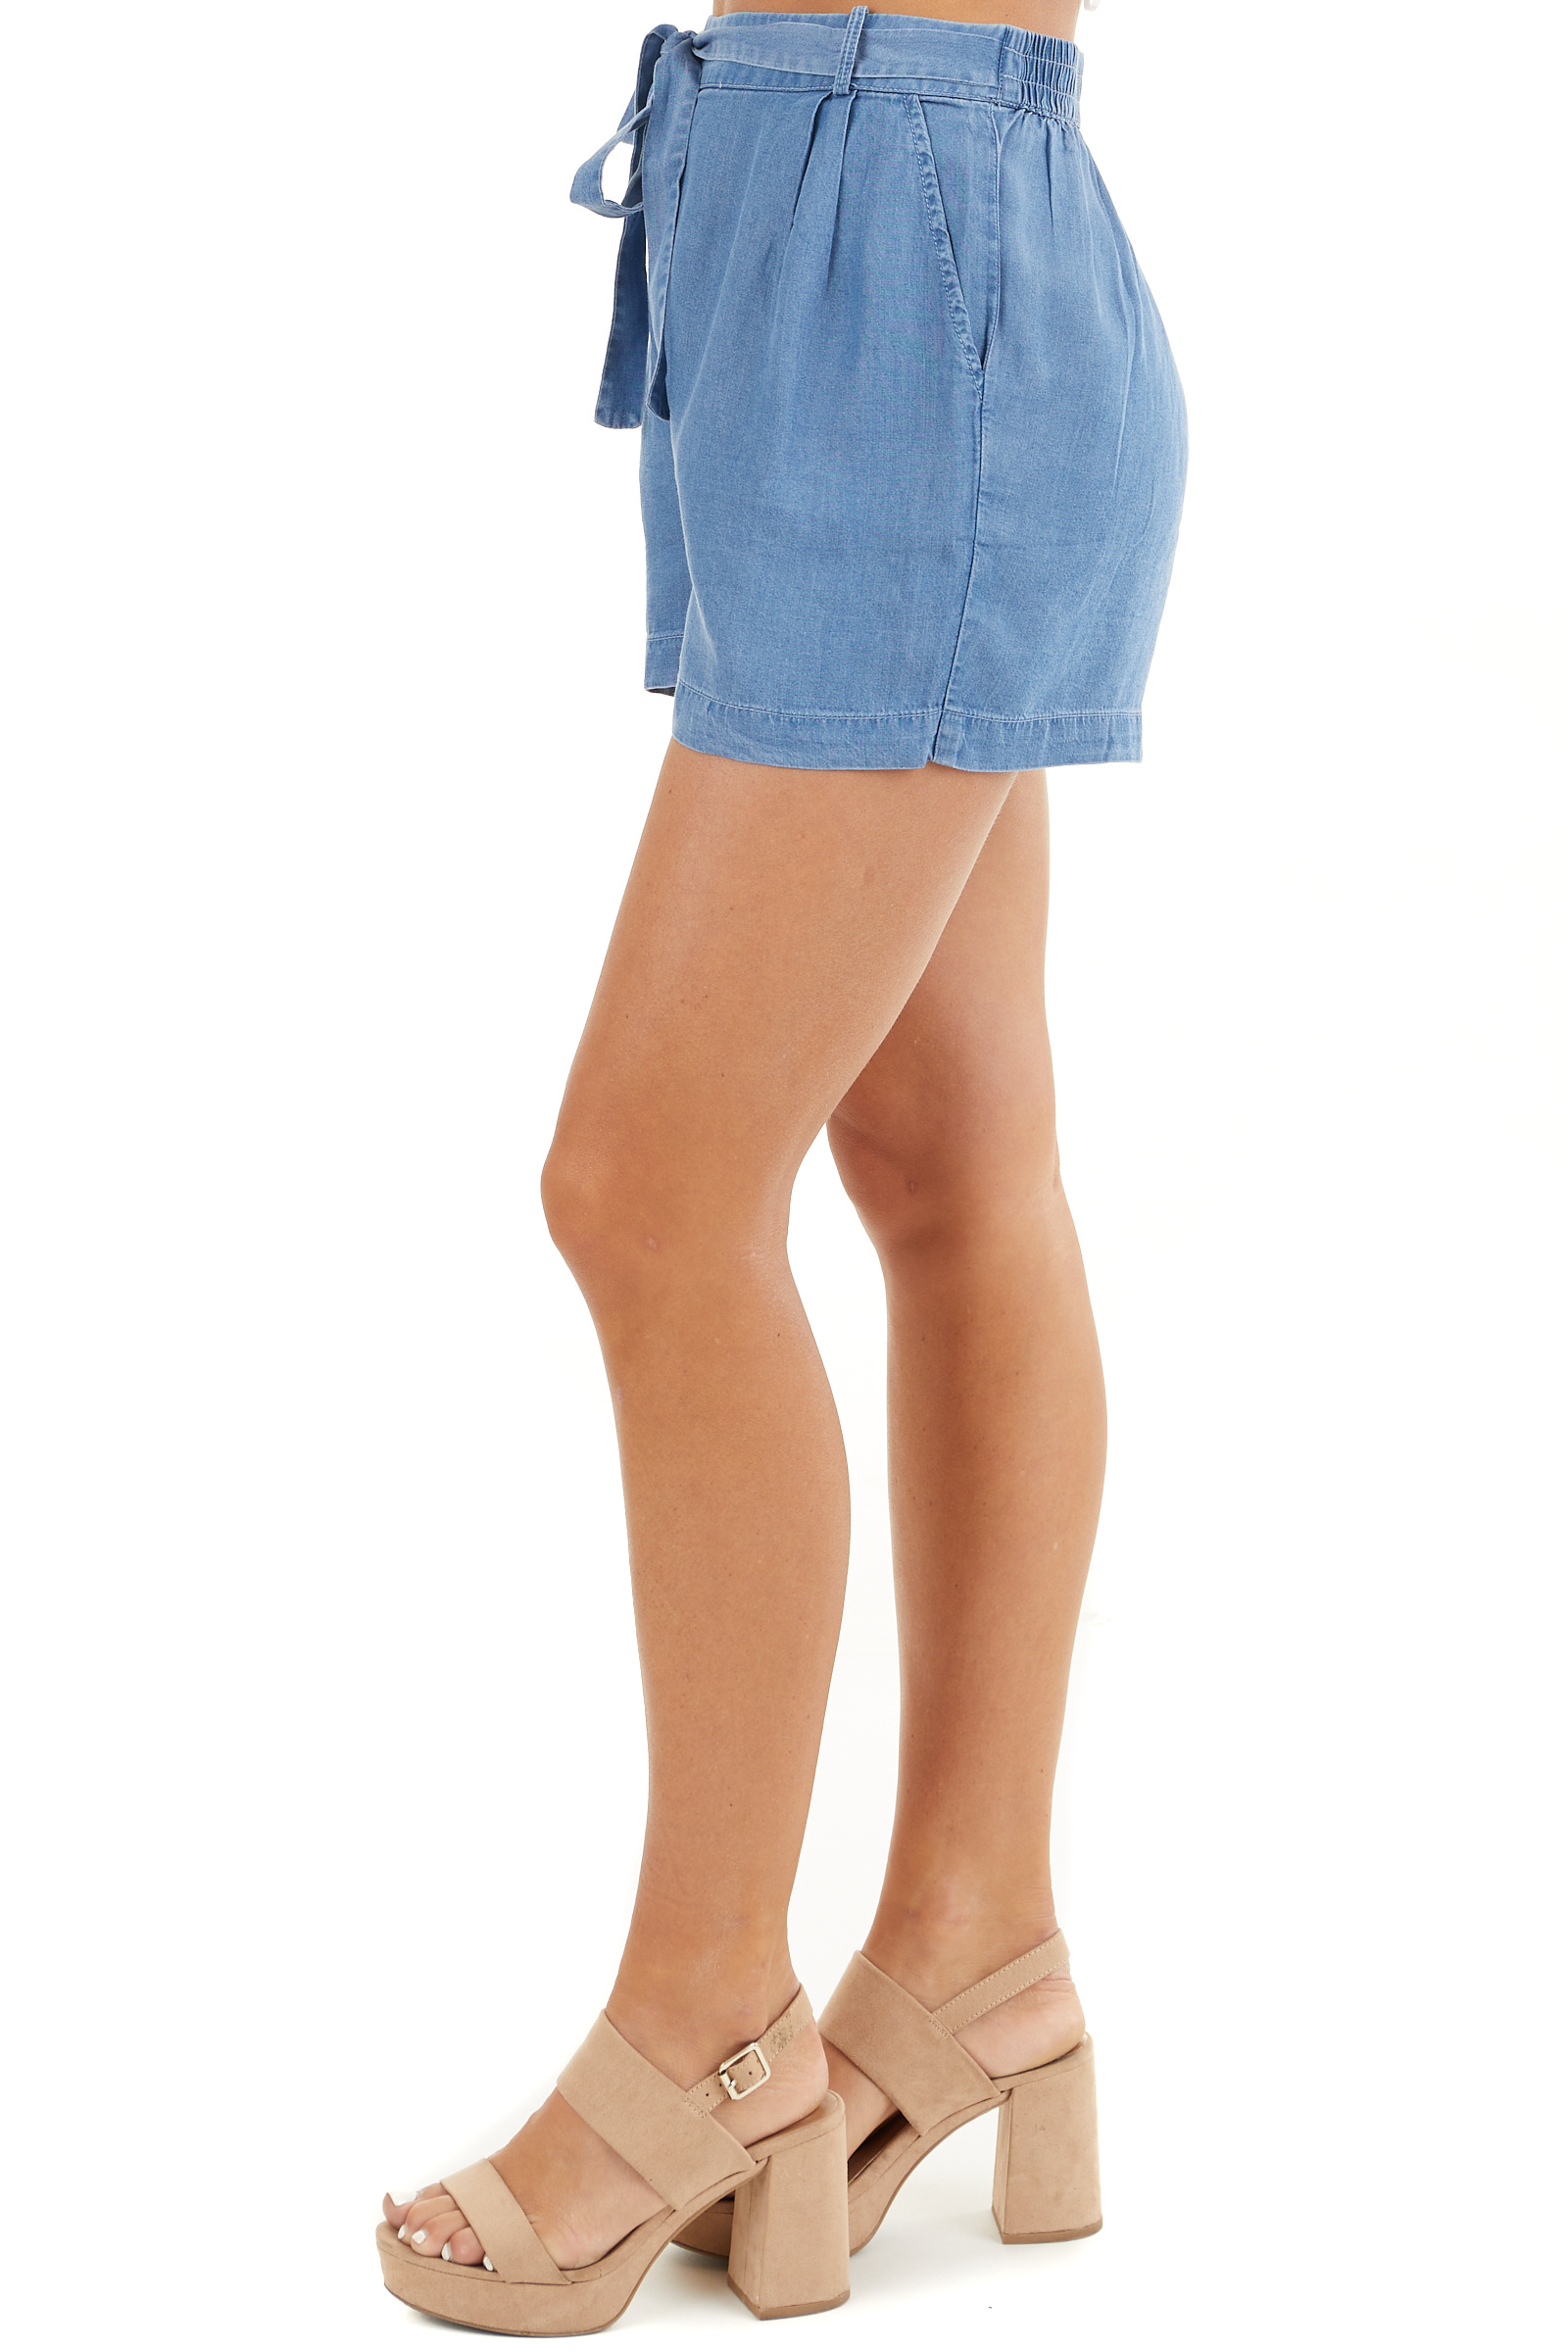 Denim Blue High Waisted Chambray Shorts with Tie Detail side view